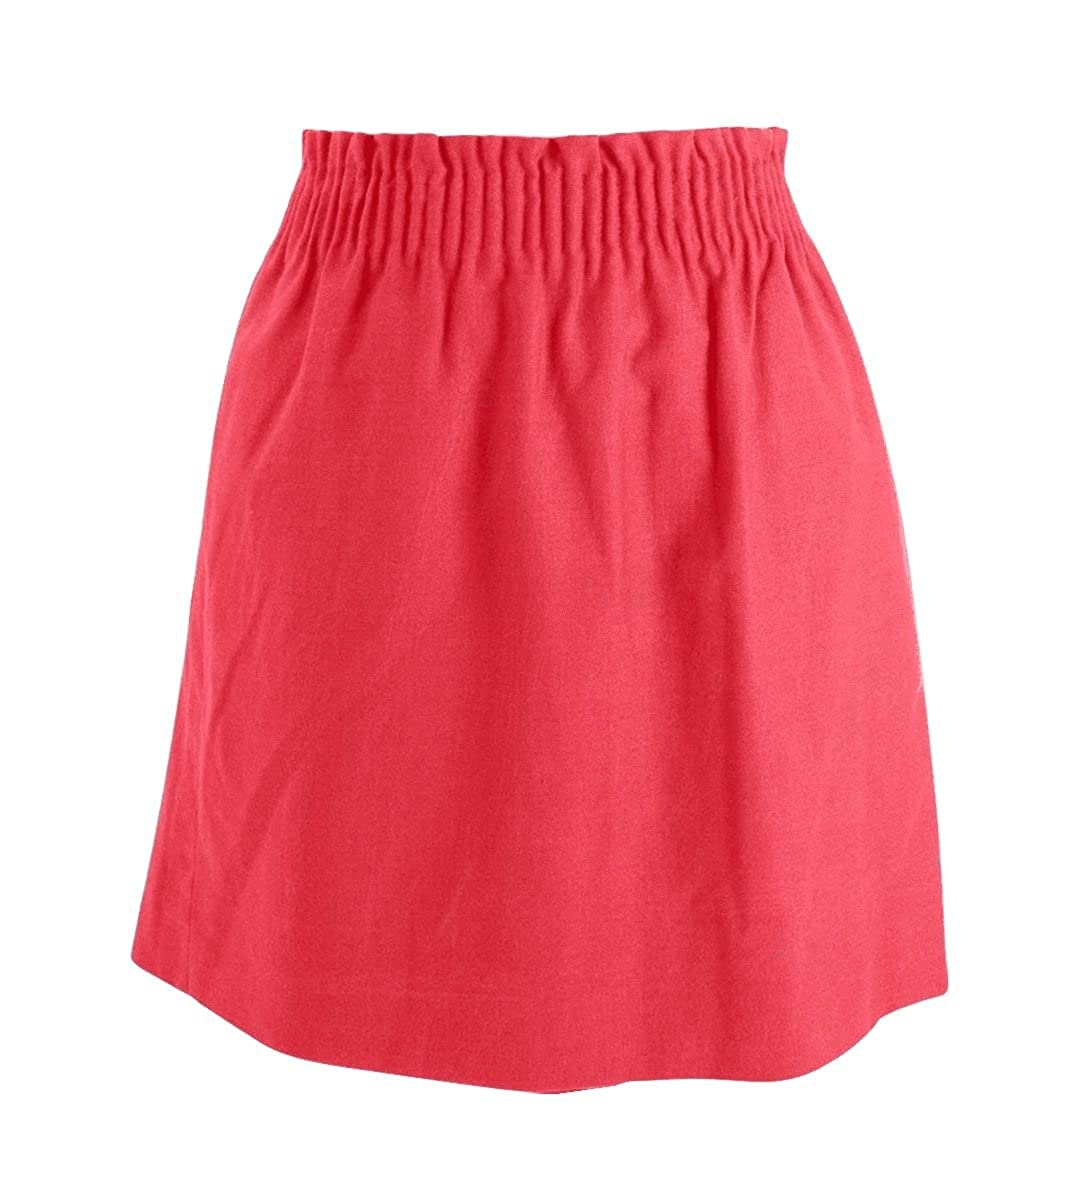 a13fc8af9c J Crew Factory - Women's - Solid Colors - Pull-on Sidewalk Mini Skirt at  Amazon Women's Clothing store: